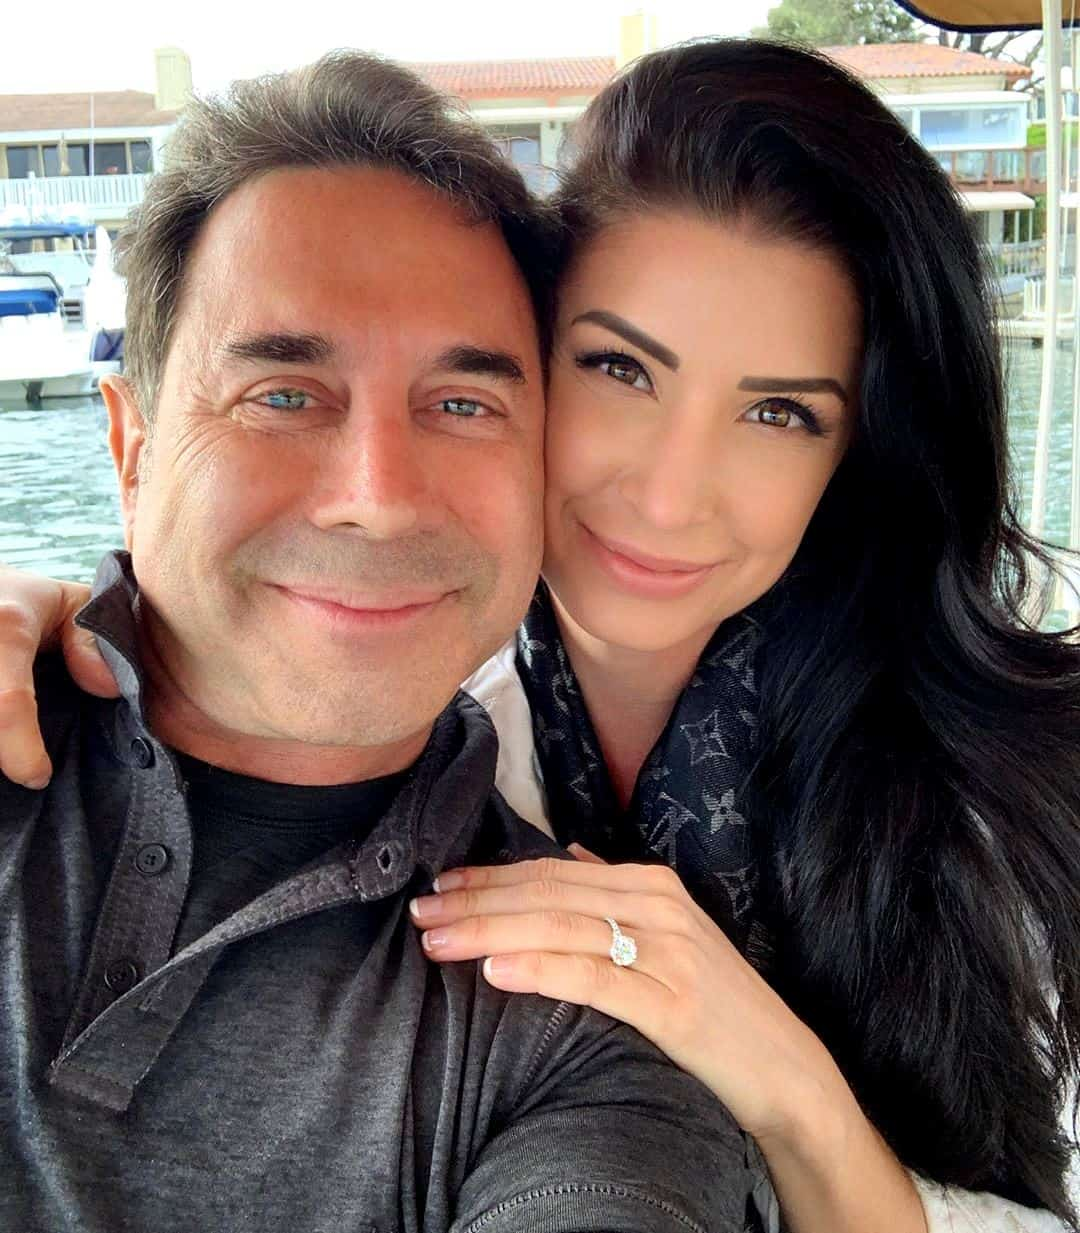 Paul Nassif and Brittany Pattakos Engagement Ring